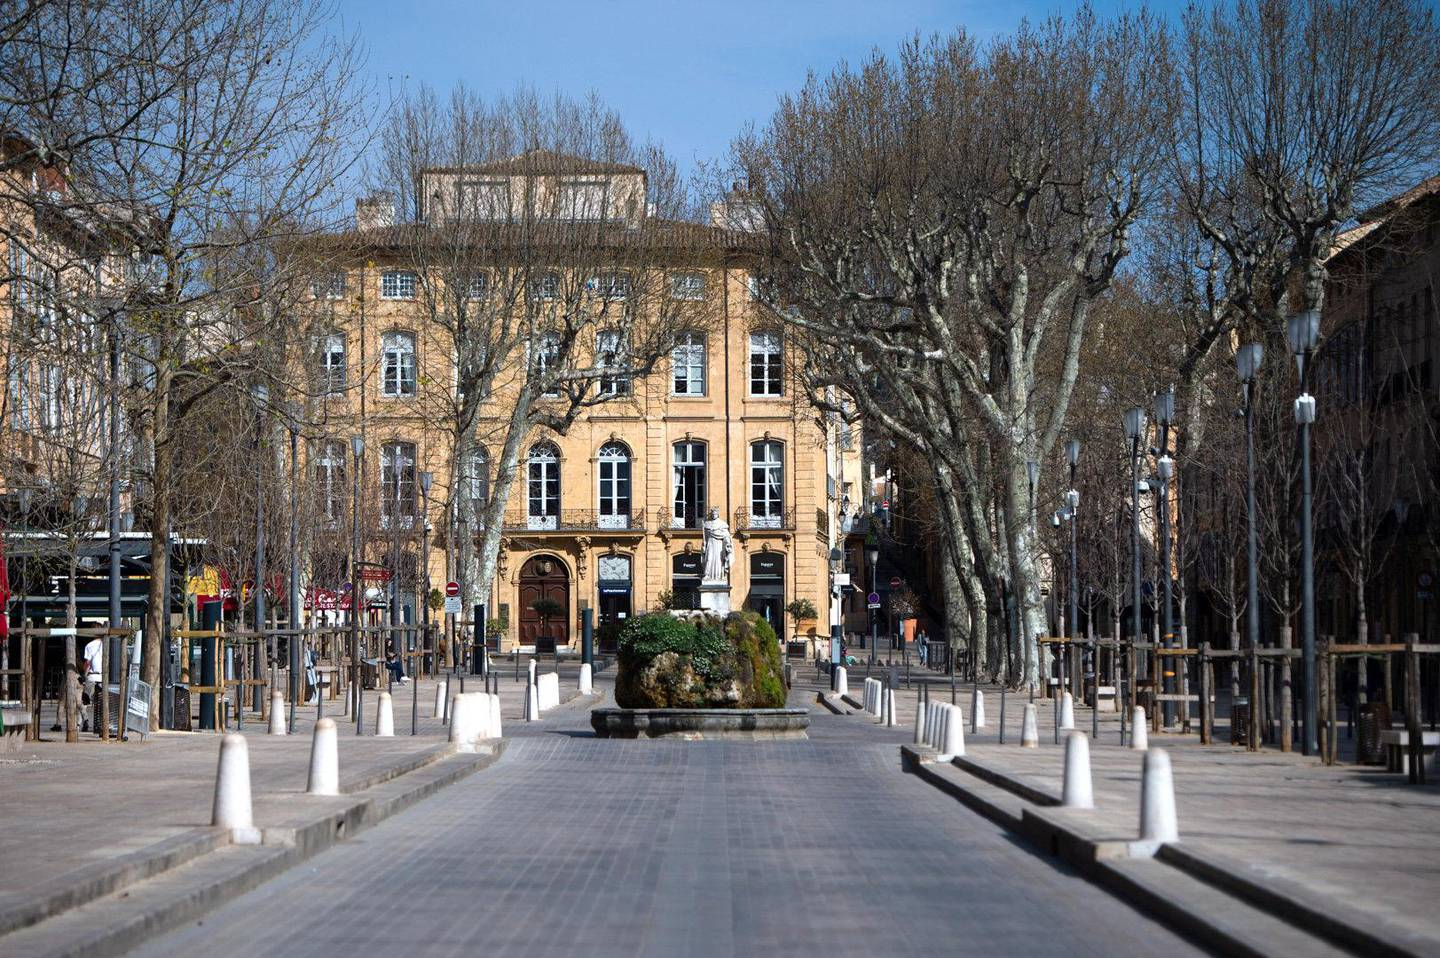 This picture shows the main street 'Le Cours Mirabeau' in Aix en Provence, southern France on March 20, 2020, deserted due to a strict lockdown to stop the spread of the COVID-19 in the country. - A strict lockdown requiring most people in France to remain at home came into effect at midday on March 17, 2020, prohibiting all but essential outings in a bid to curb the coronavirus spread. The government has said tens of thousands of police will be patrolling streets and issuing fines of 38 to 135 euros ($42-$150) for people without a written declaration justifying their reasons for being out. (Photo by CLEMENT MAHOUDEAU / AFP)